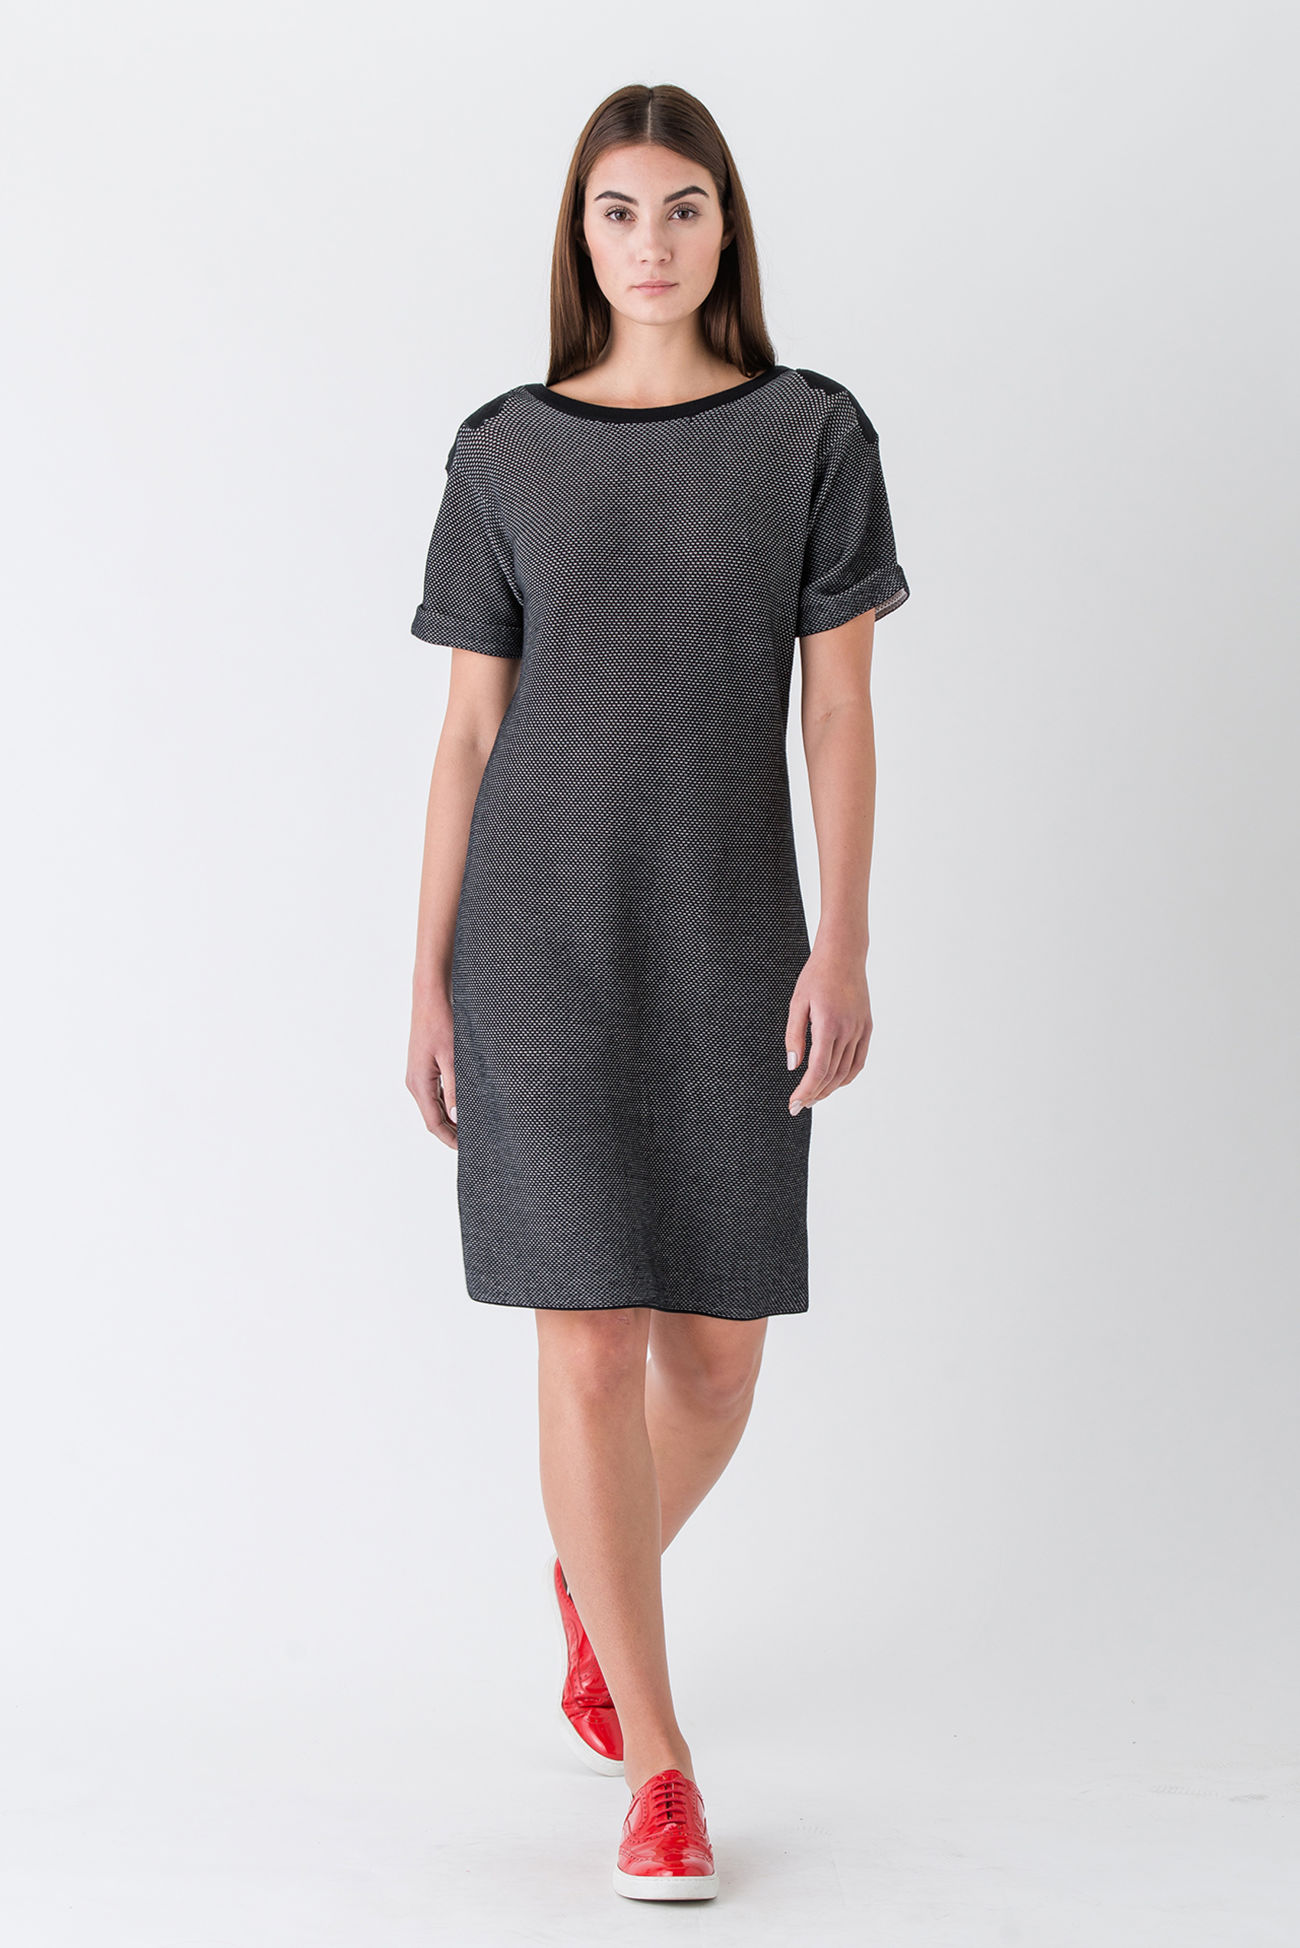 Exquisite shift dress with ajour knit and elegant patches